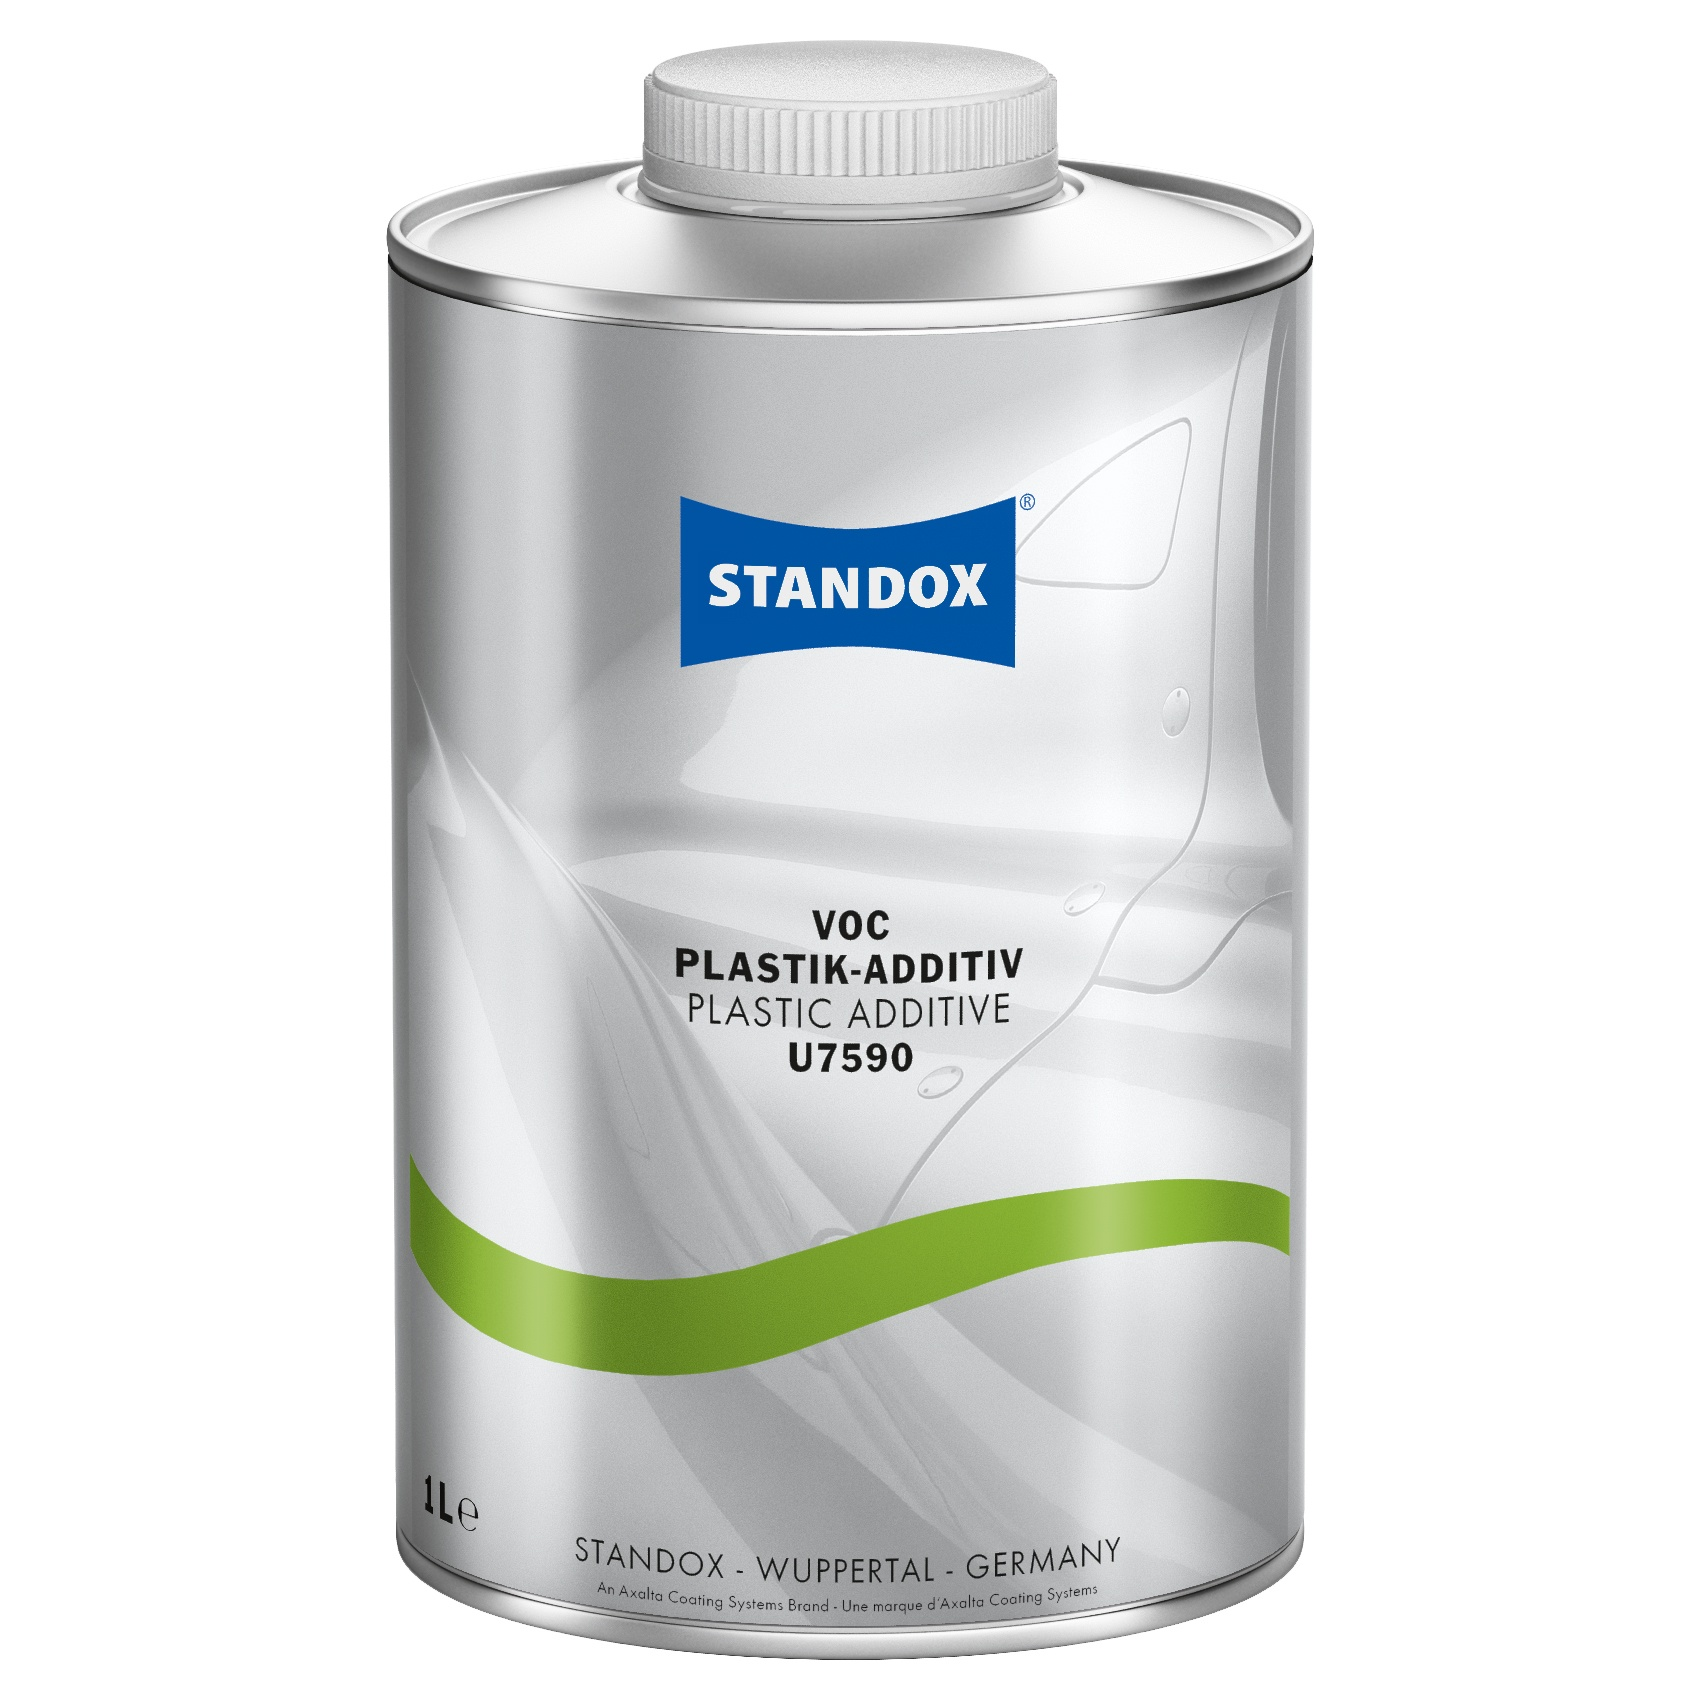 Standox VOC Plastic Additive